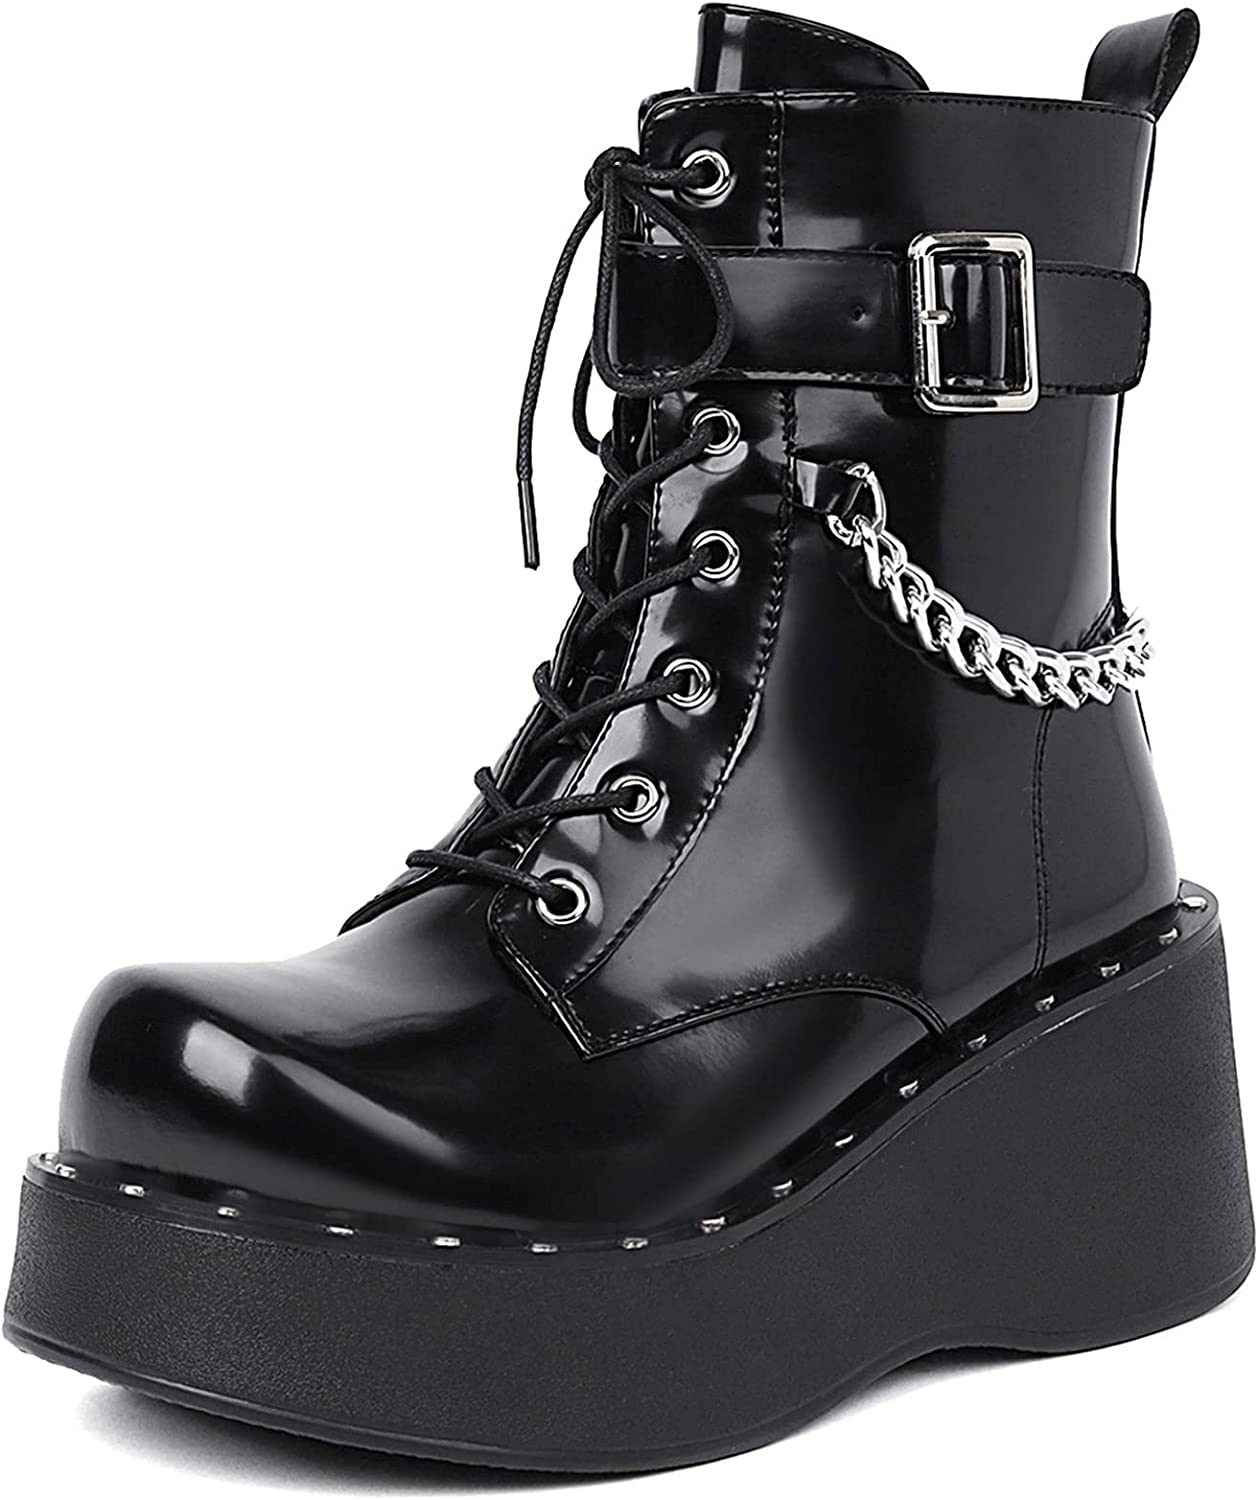 SaraIris Platform Boots for Women Punk Goth Boots Personality Studded Buckle Chunky Mid Calf Boots Zipper Motorcycle Boots